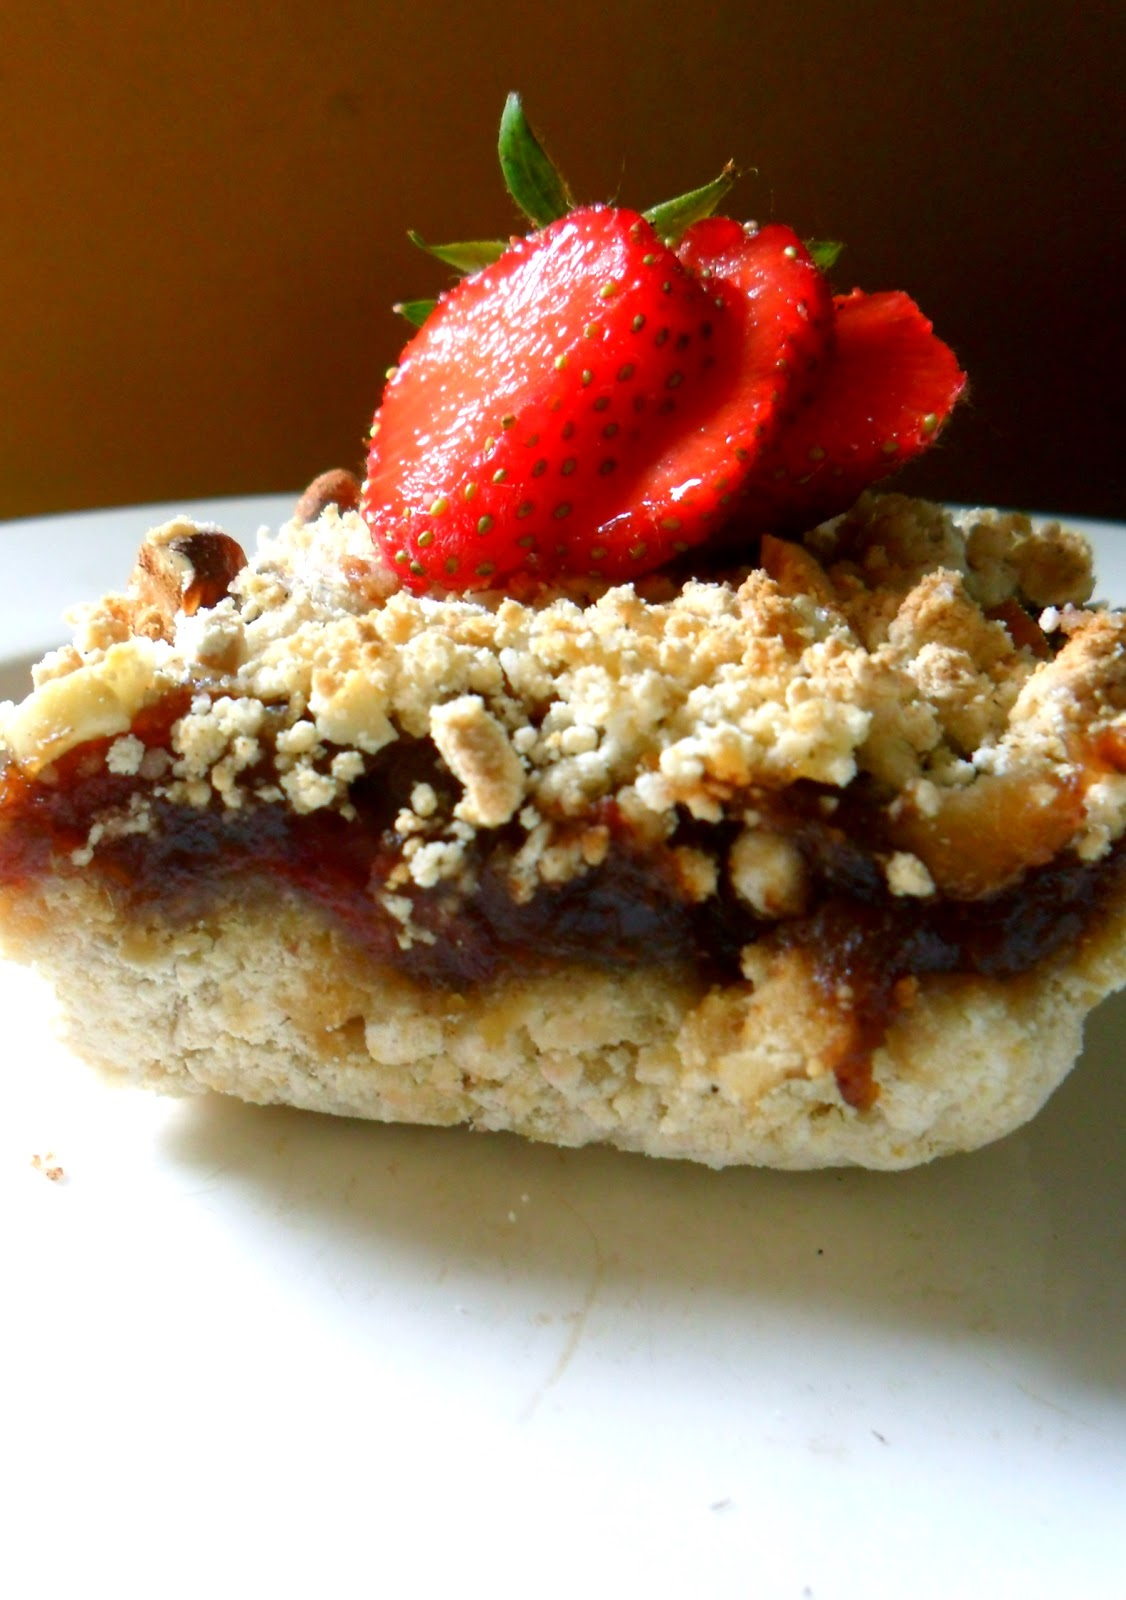 ... Beebz: Gluten free and fat free Strawberry and Date crumble bars